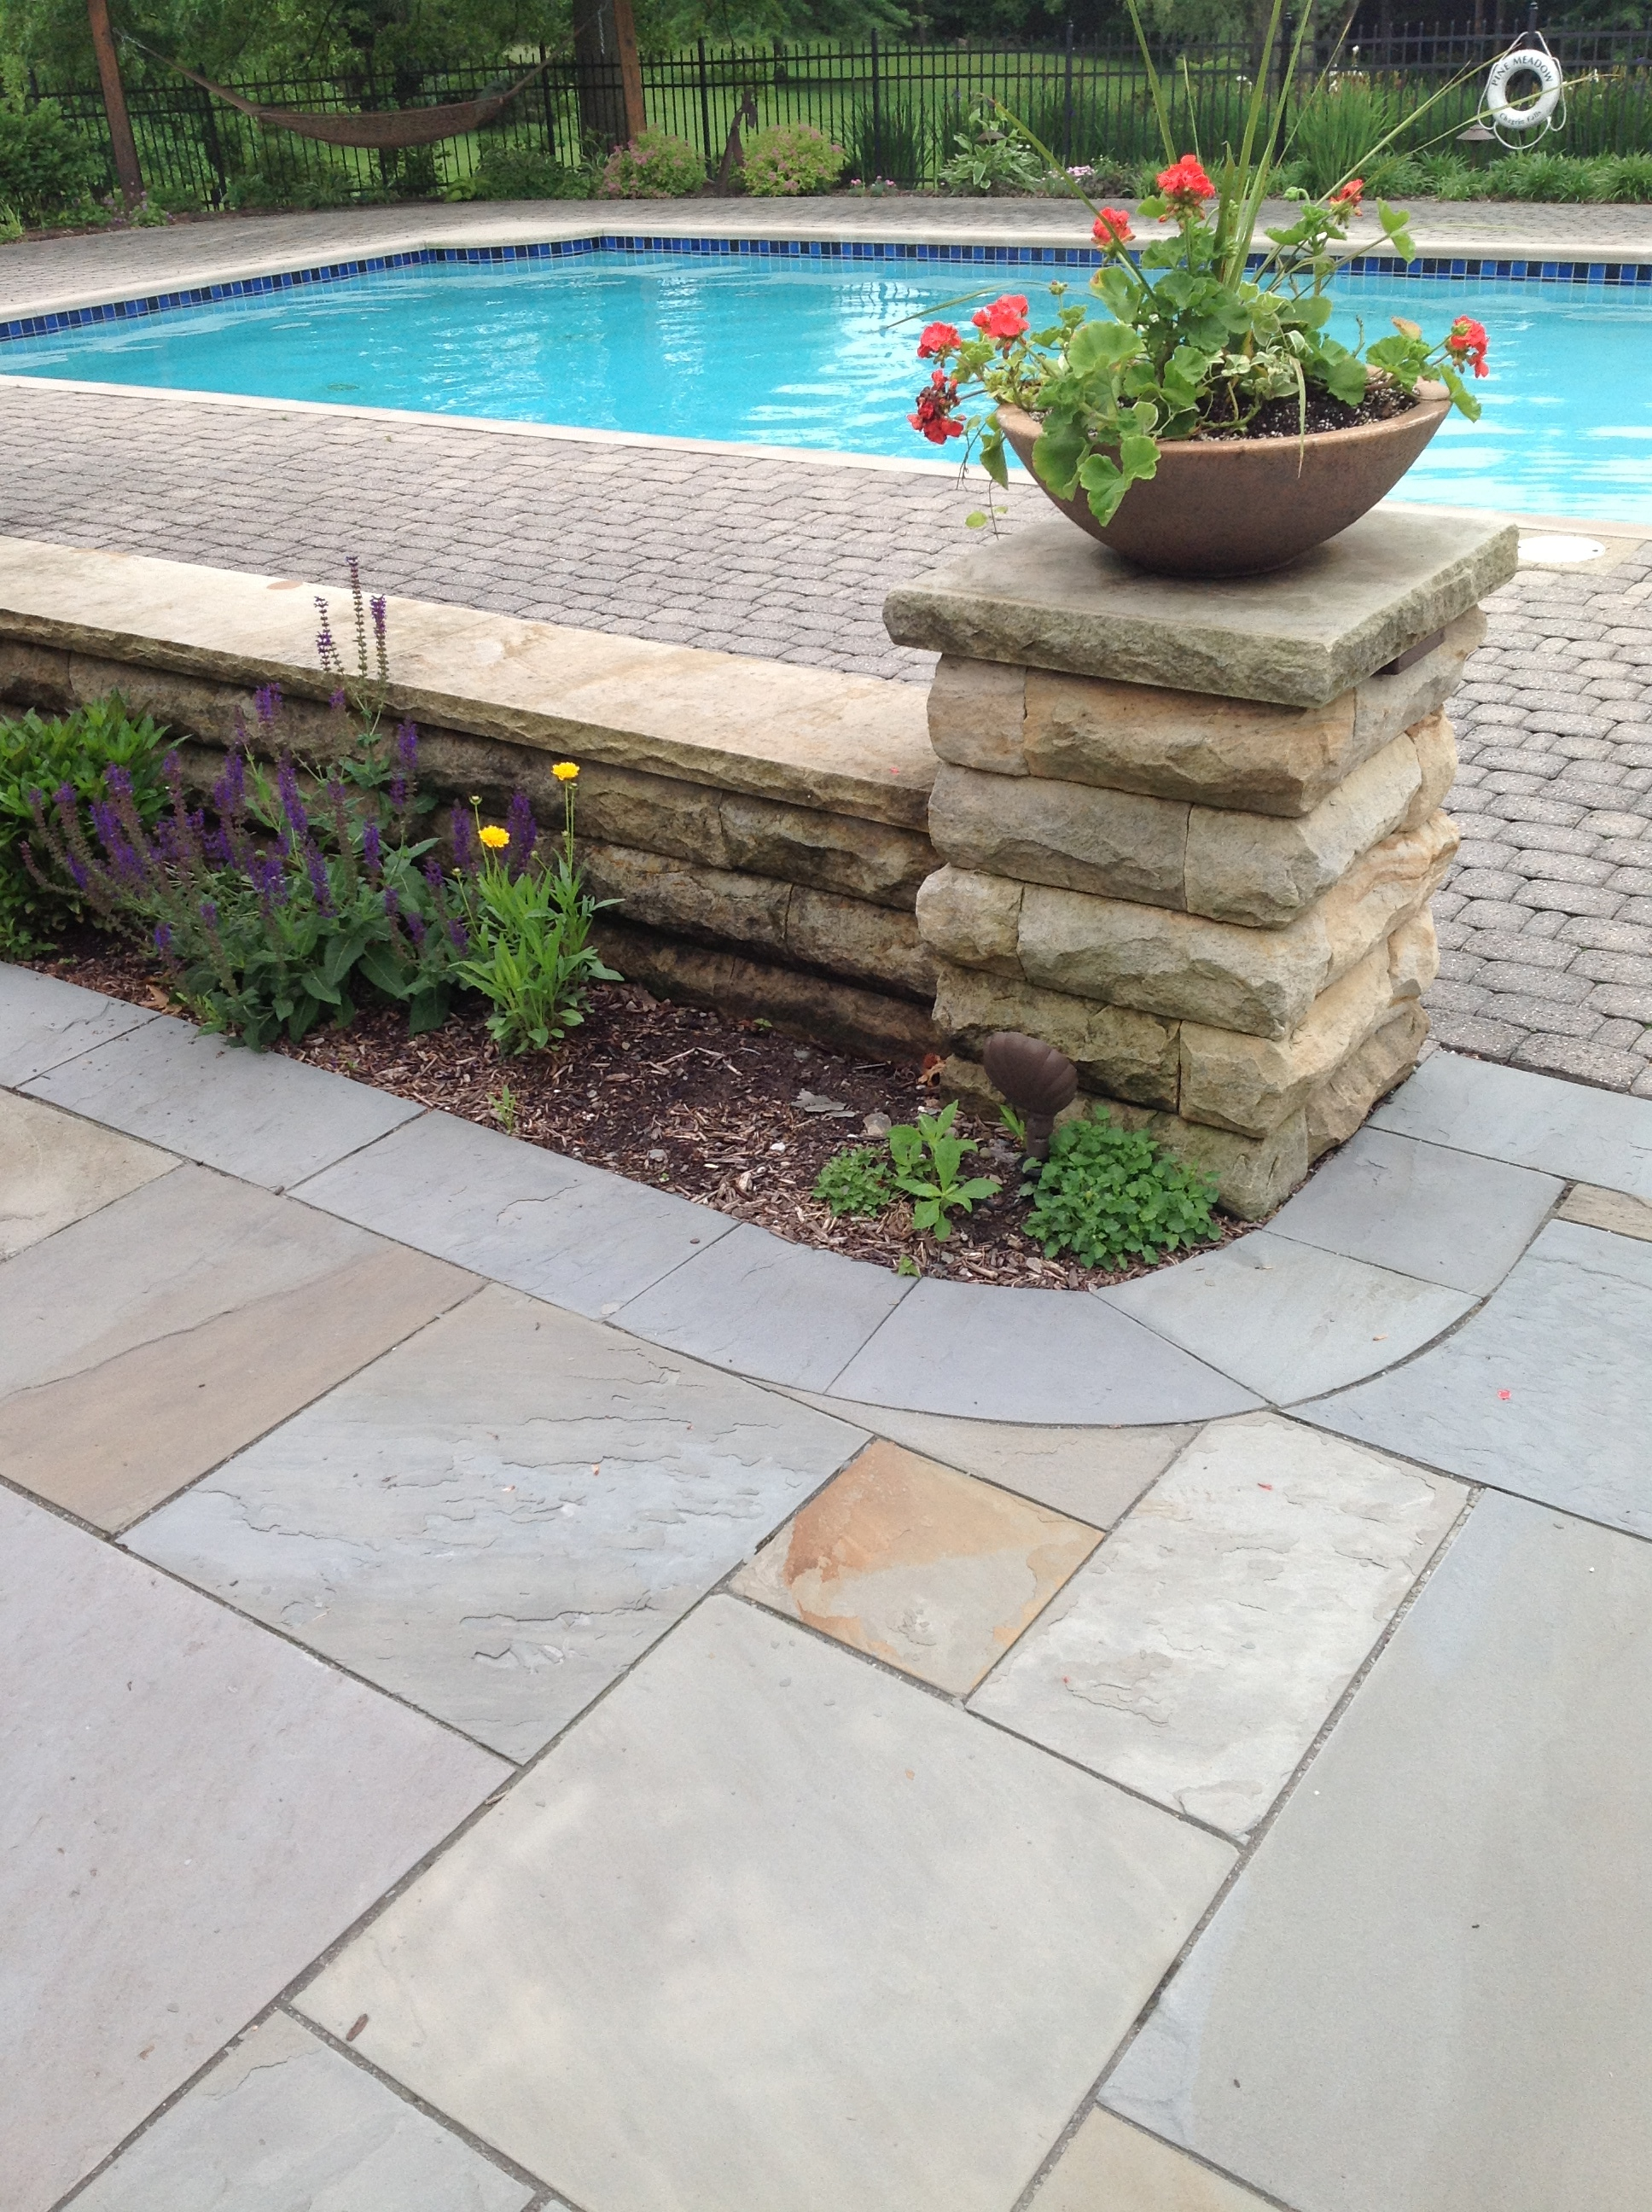 Landscape design improved with Unilock patio pavers and retaining wall Novelty, OH